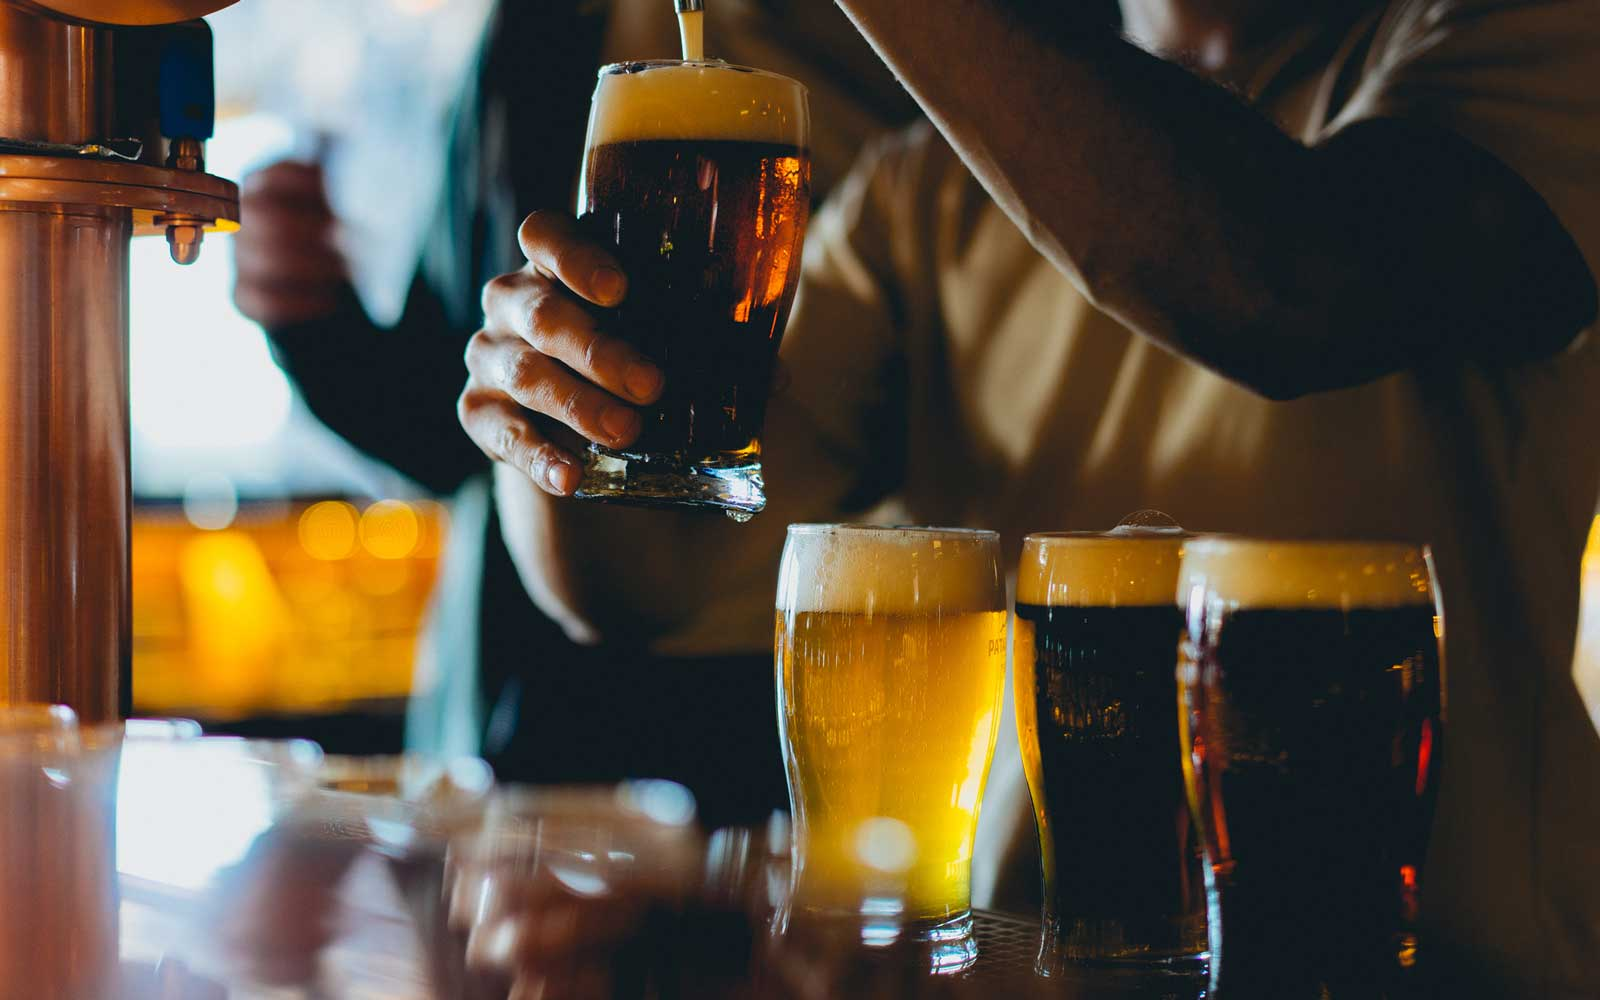 Dream Job Alert: London Brewery Looking for a Professional Beer Taster